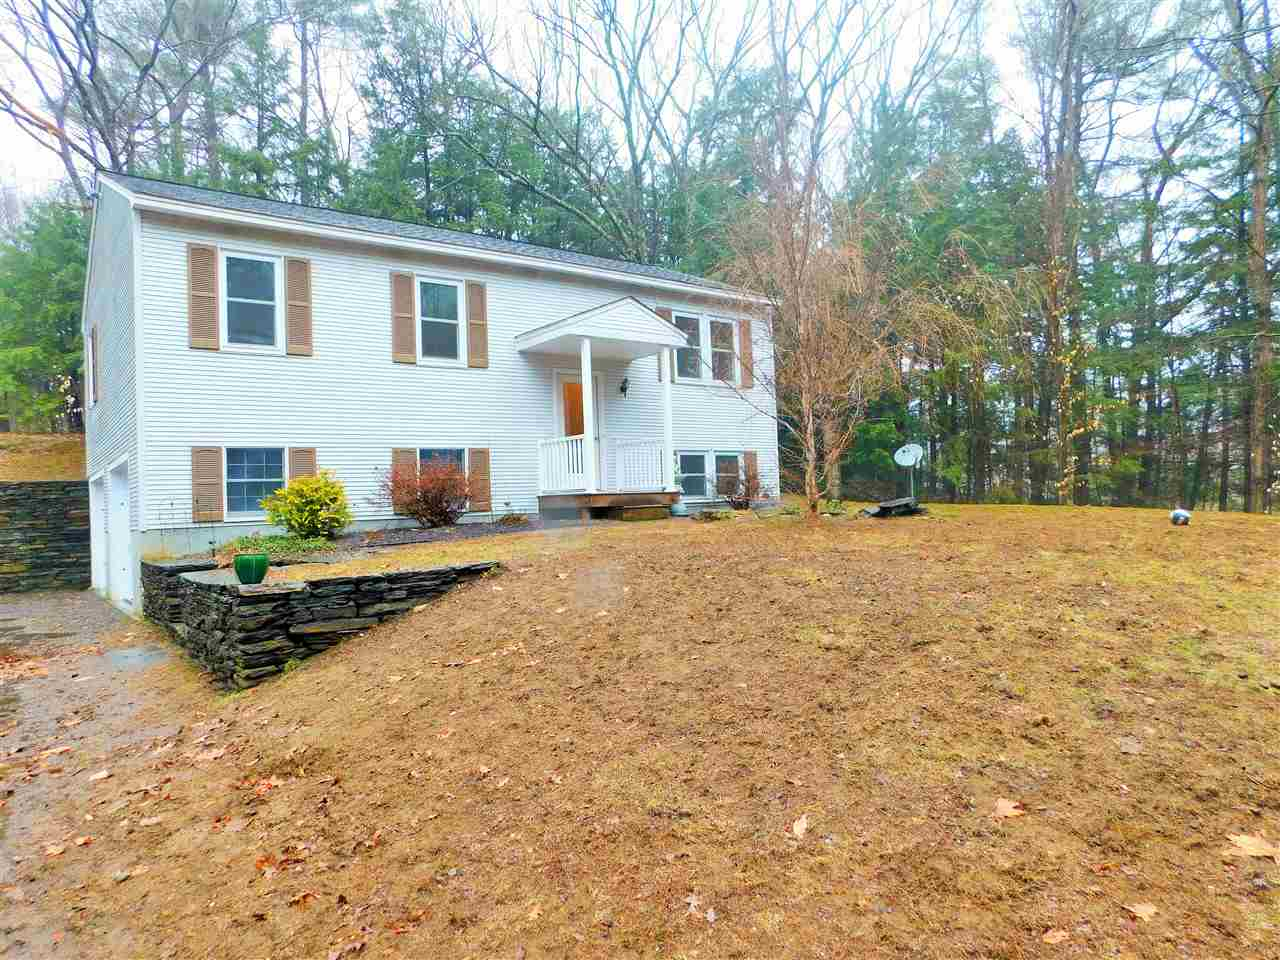 MLS 4744852: 4 Cobleigh Estates Road, Chesterfield NH